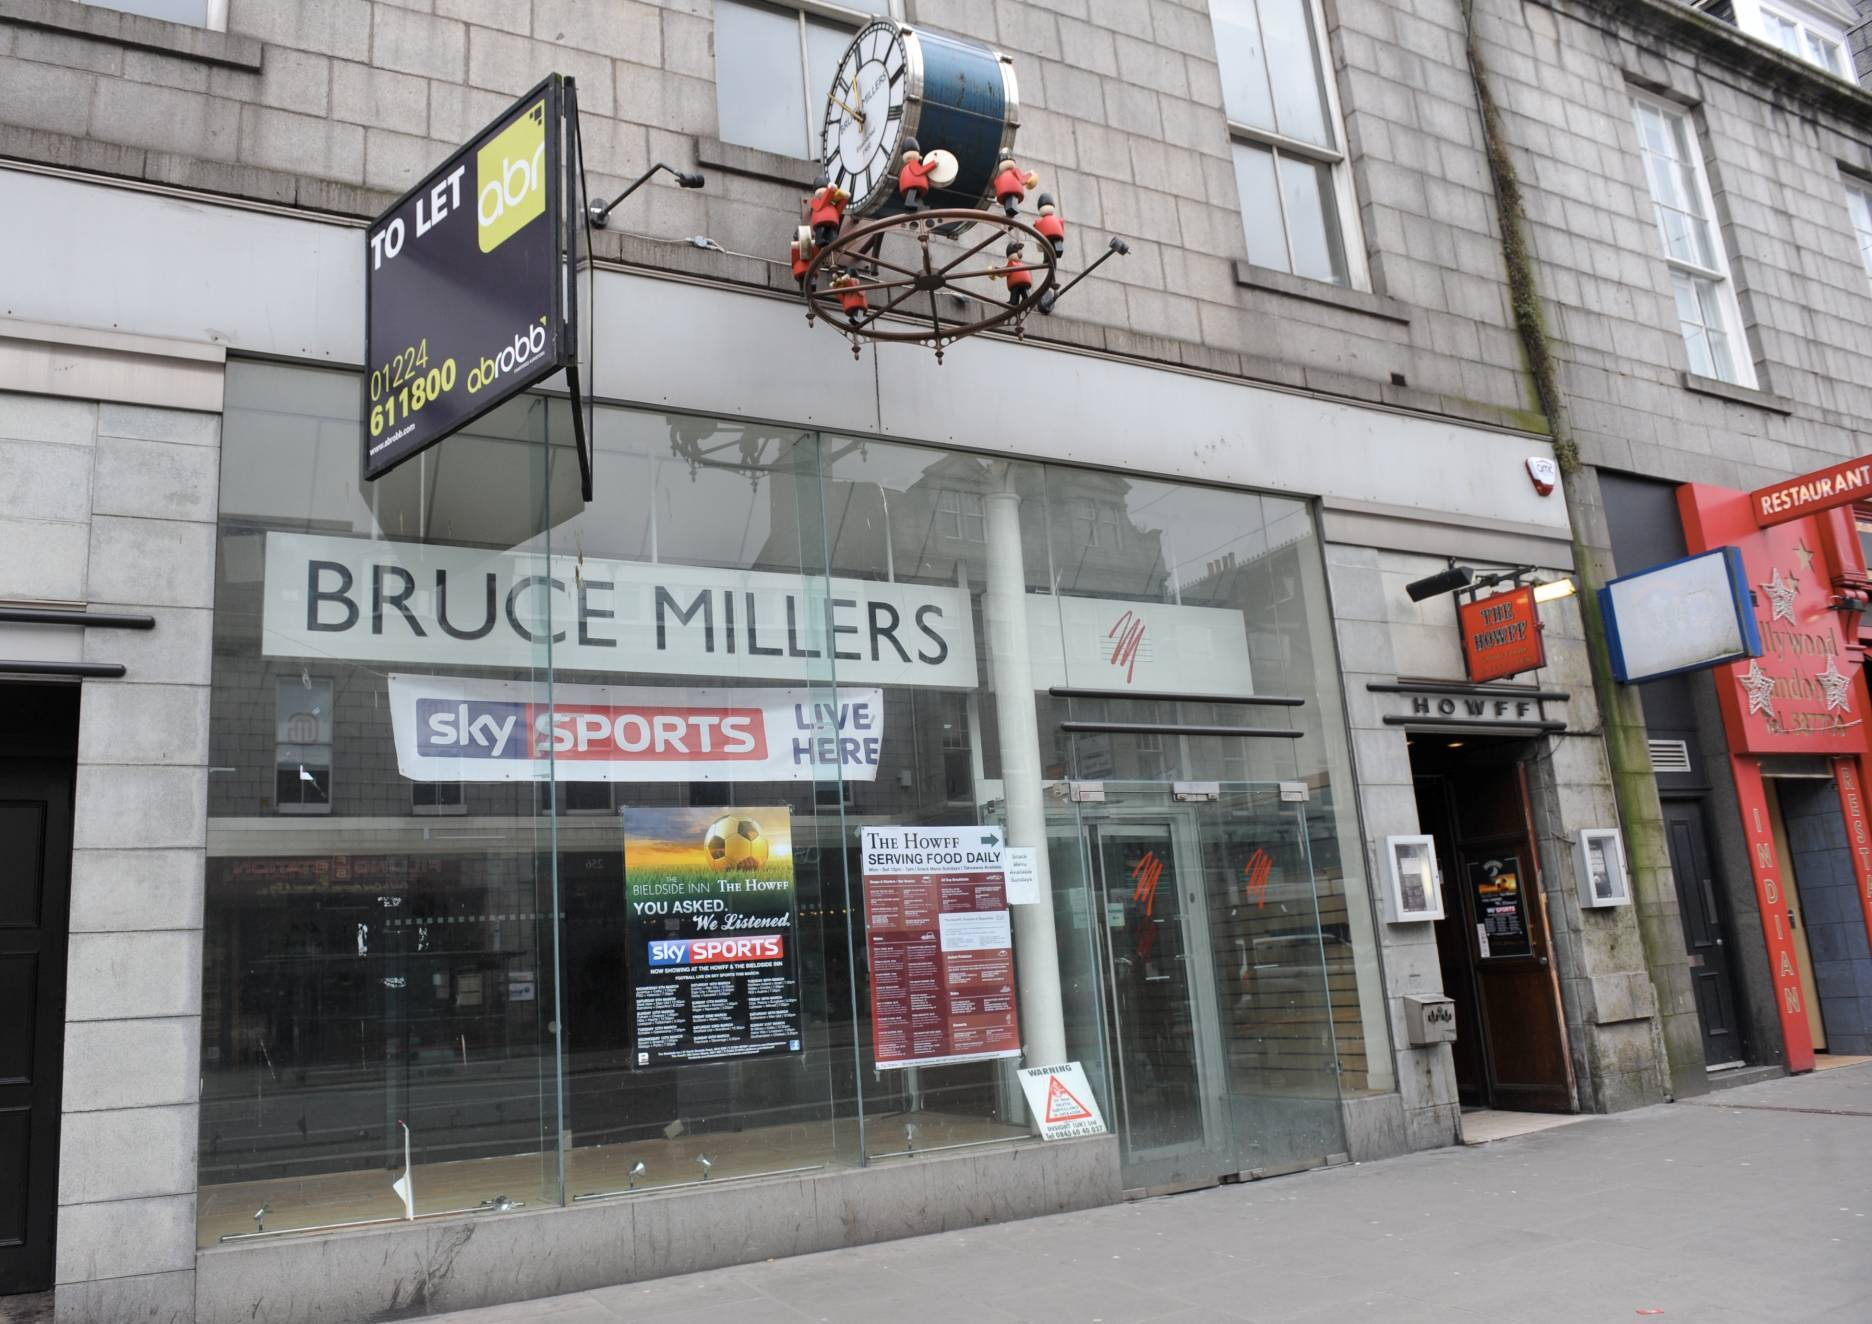 The former Bruce Millers shop on Union Street, Aberdeen